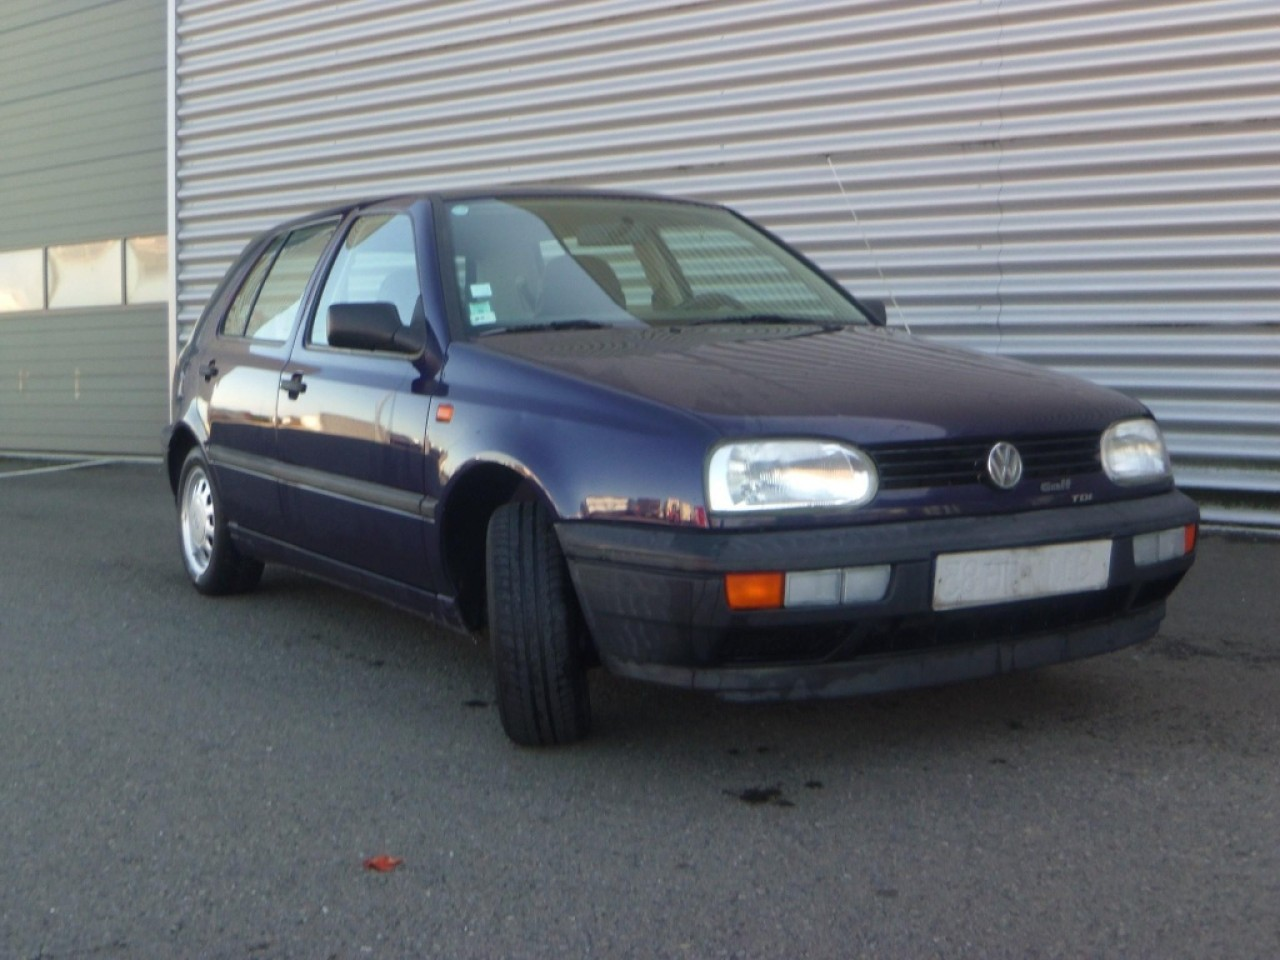 CONTACT VW GOLF 3 , 1.6 BENZ. FAB. 1991 - 1999 ZXYW2018ION